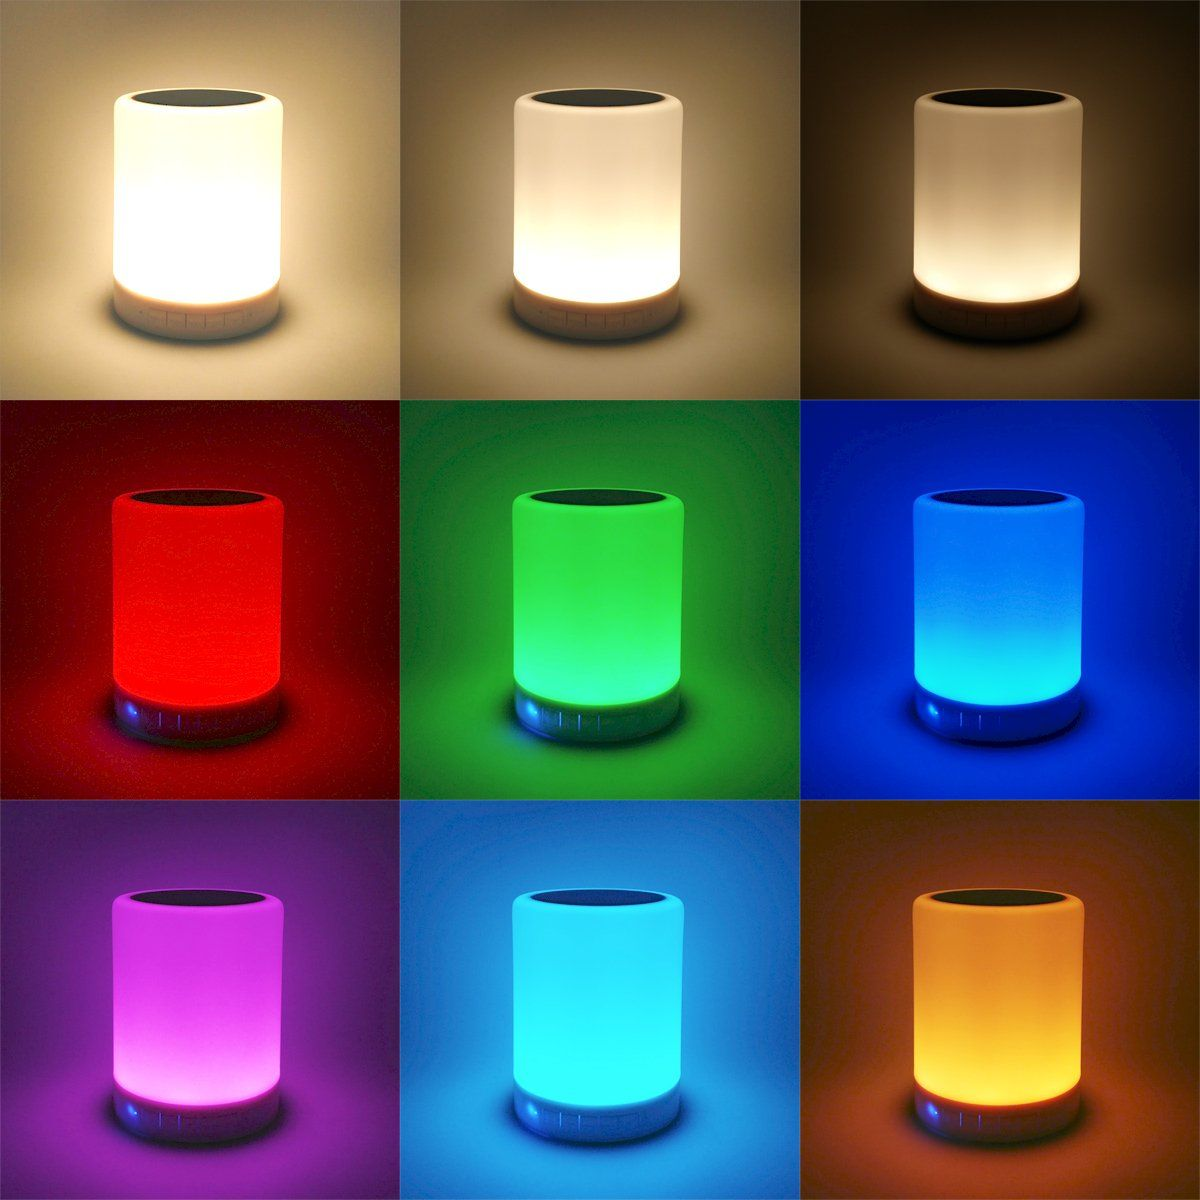 Zhoppy Night Light Bluetooth Speakers Touch Control Bedside Lamp Portable Table Lamp Color Led Outdoor Speaker Light Music Led Color Bedside Lamp Night Light